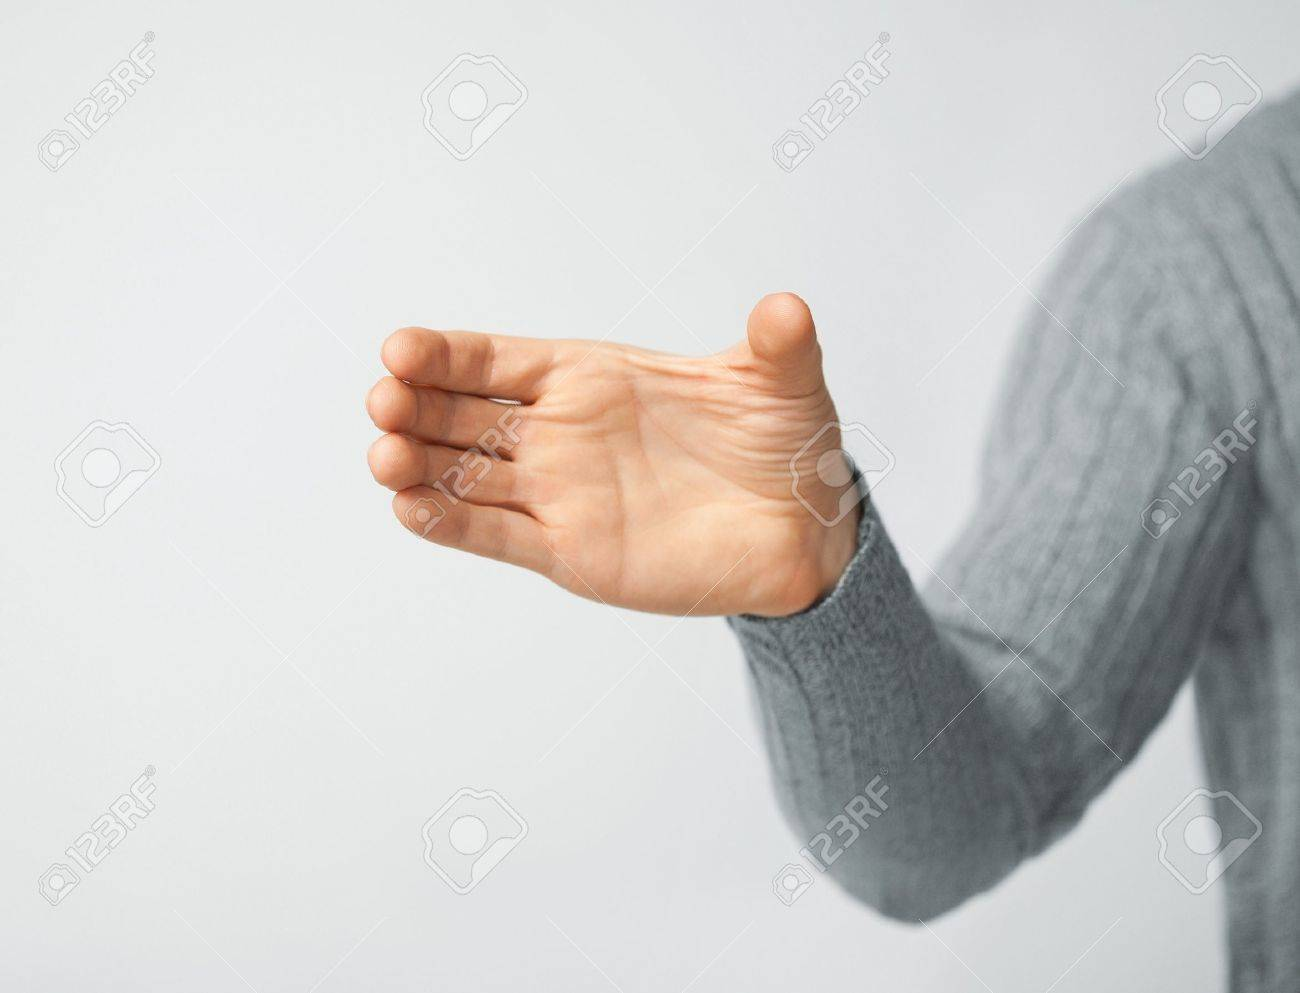 bright picture of man holding imaginary object Stock Photo - 18409752